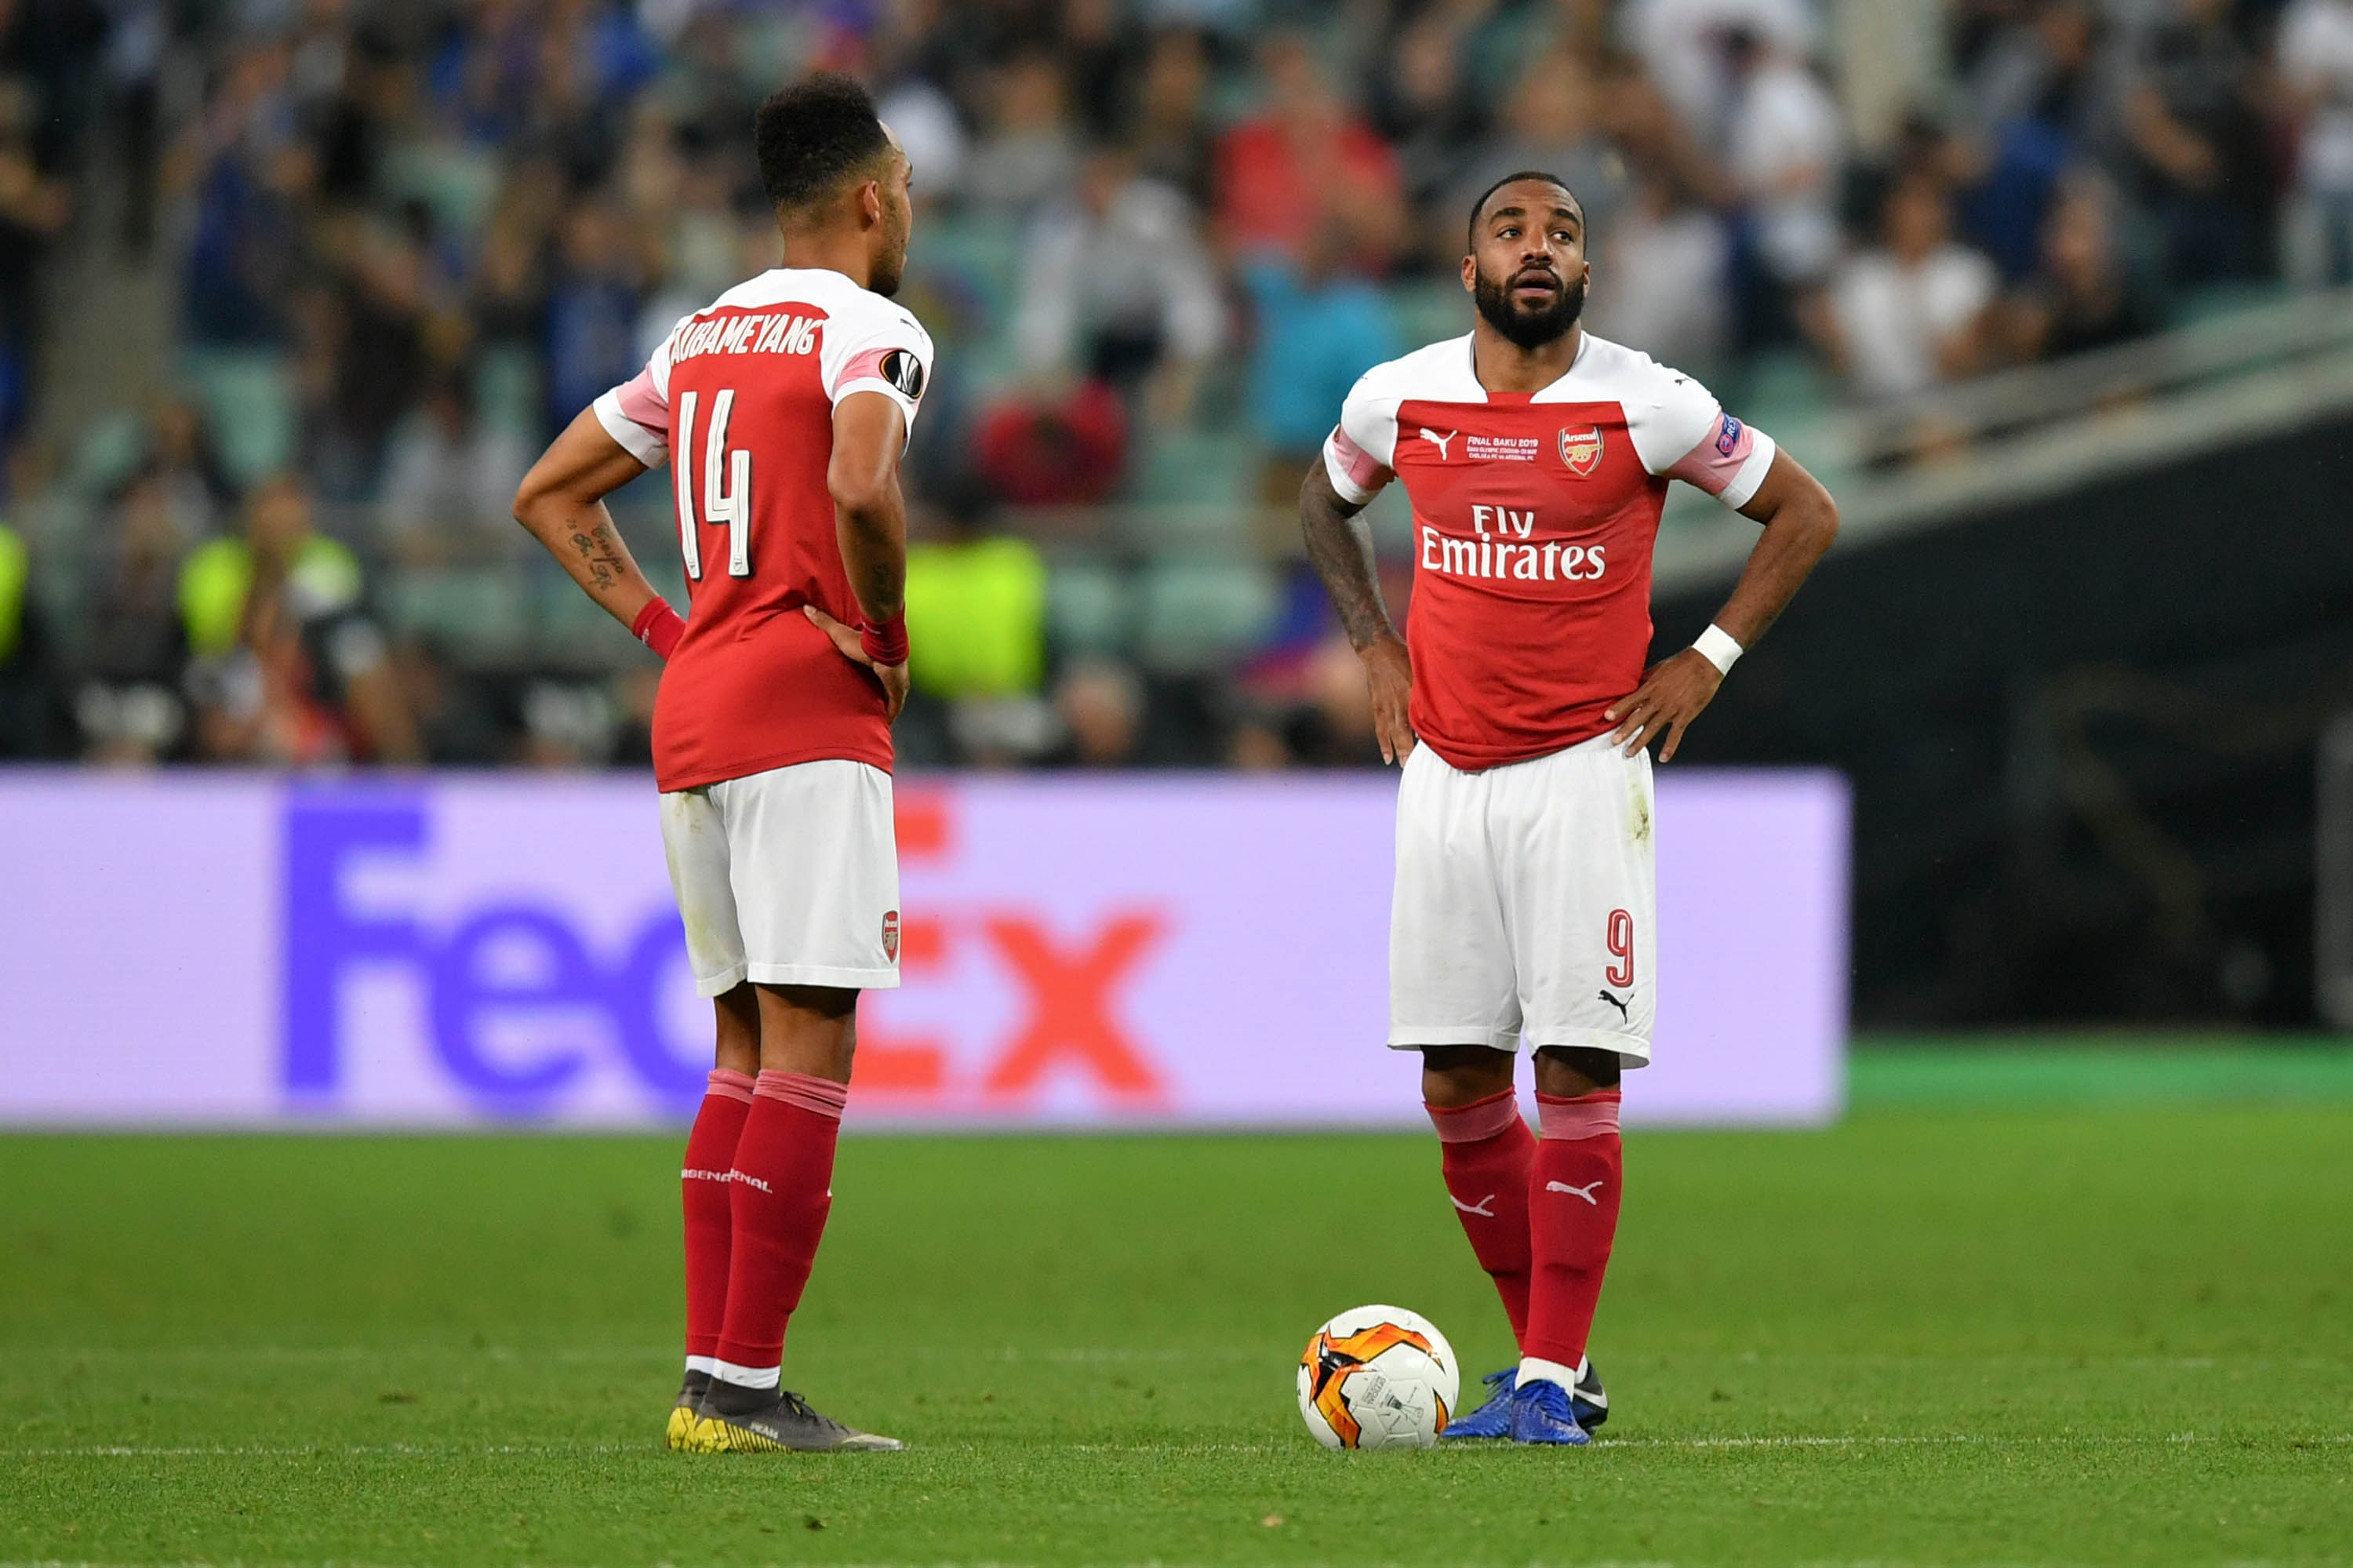 Arsenal's formidable strikers failed to show up on the big stage. (Photo courtesy: AFP/Getty)